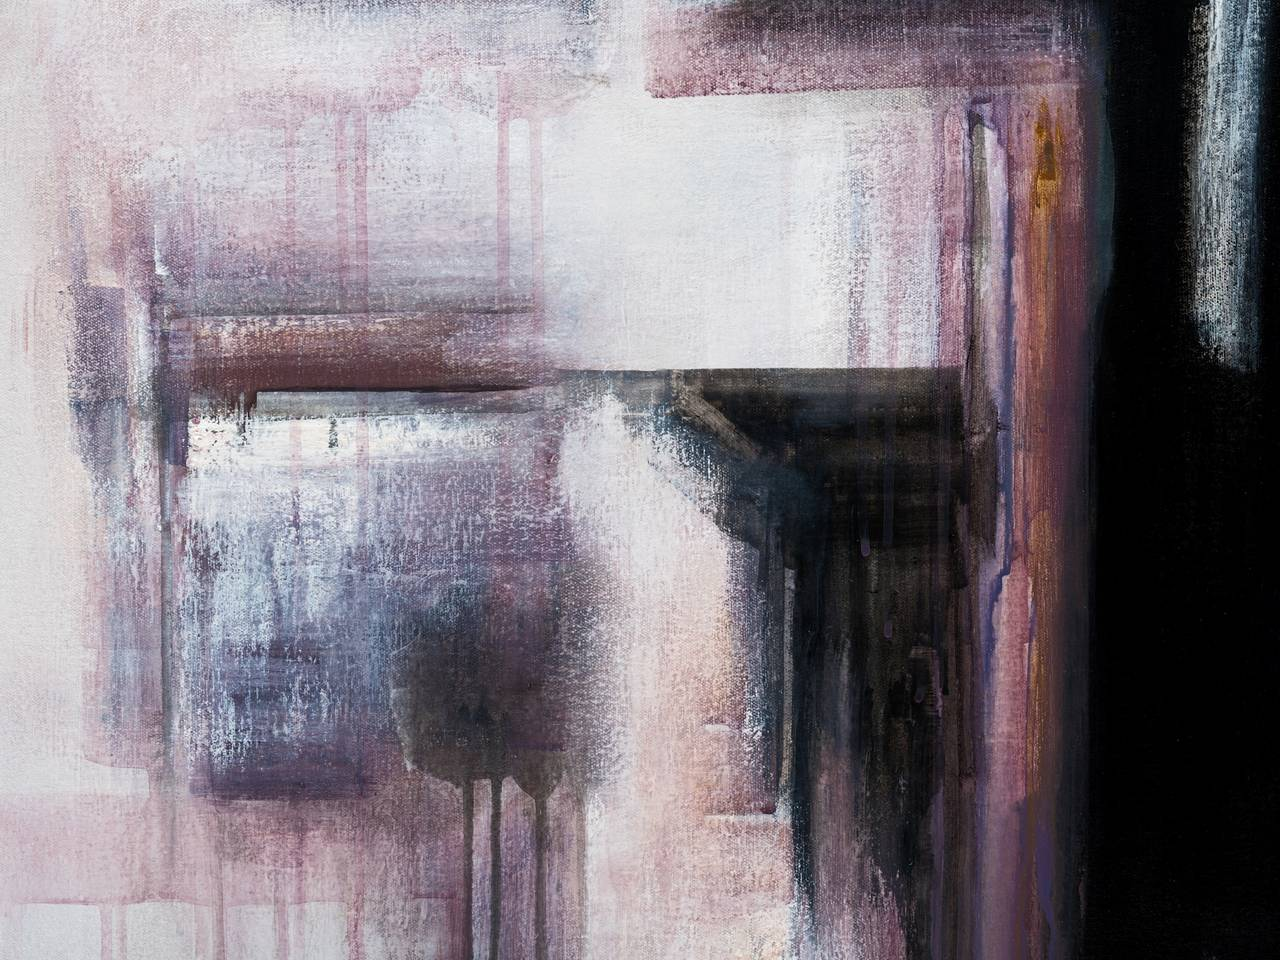 Moving composition in black, white and plum by Brazilian artist Ivanilde Brunow, 2015. This mixed media of acrylic and charcoal on canvas demonstrates a powerful abstract image of multi-layers intertwined with strong colors.